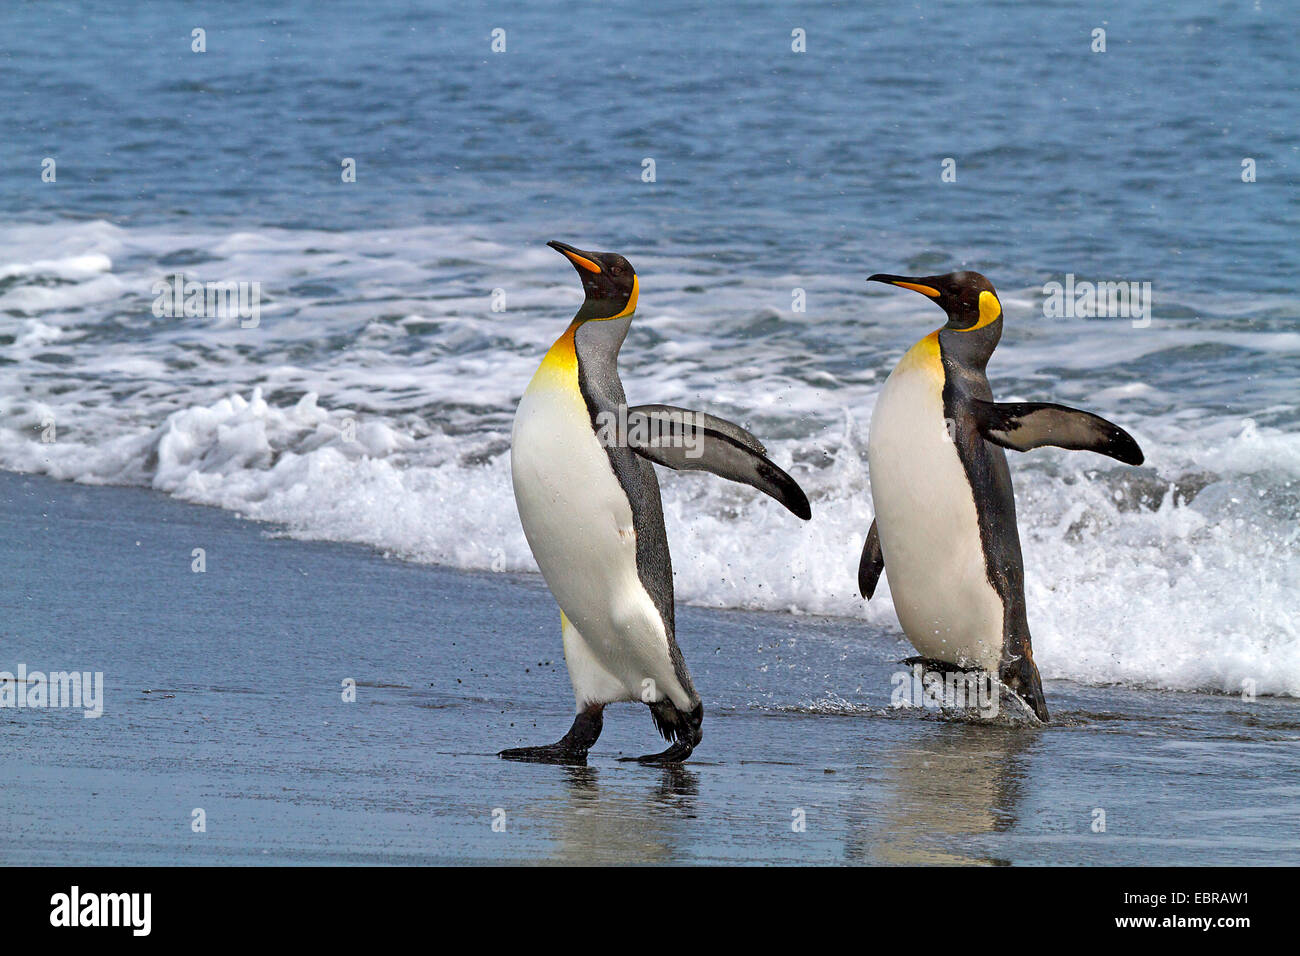 king penguin (Aptenodytes patagonicus), two king penguins going on shore, Antarctica, Suedgeorgien, St. Andrews - Stock Image